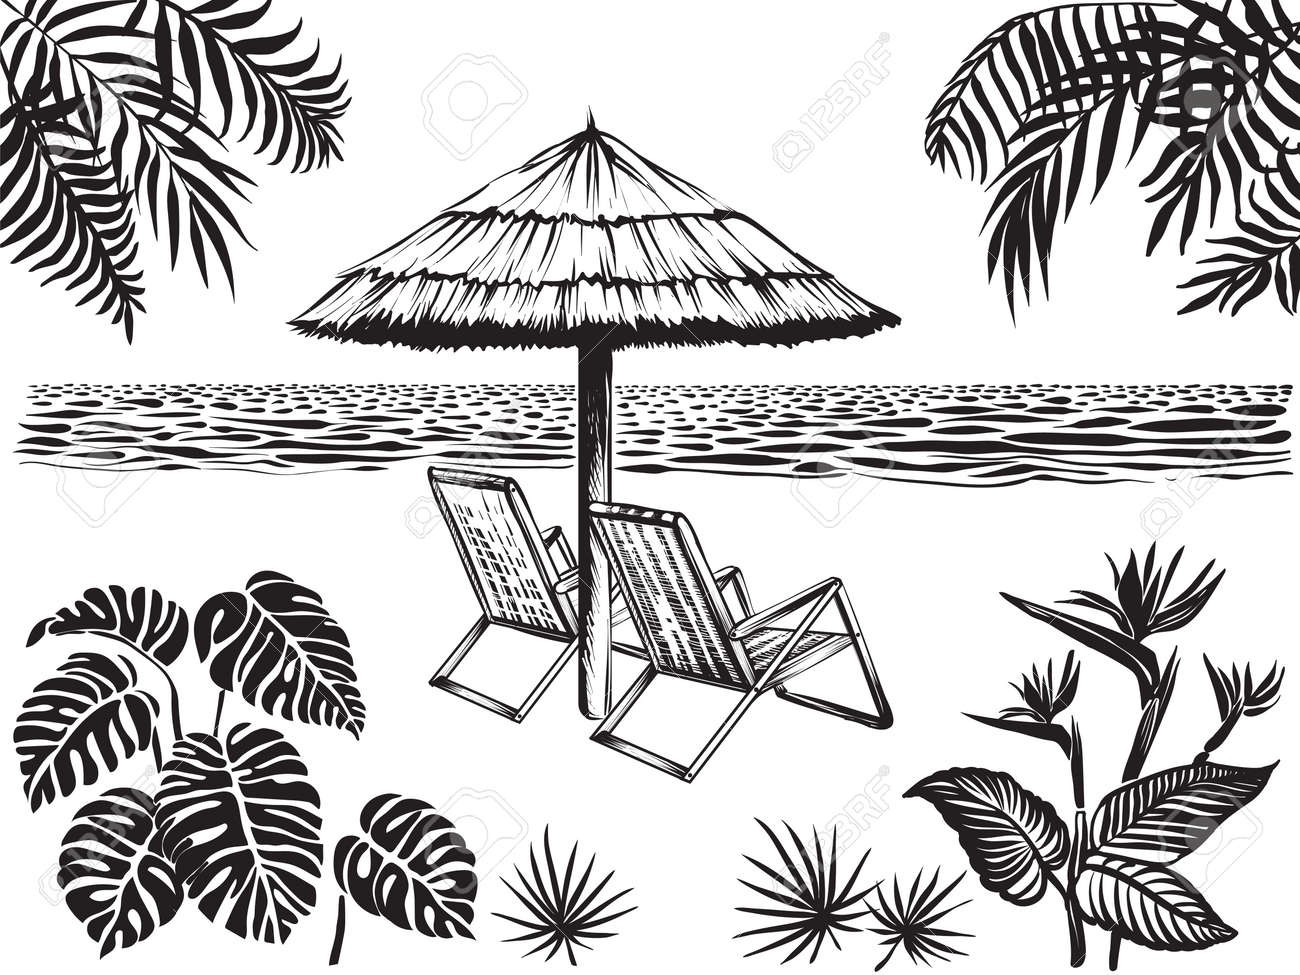 Beach Scenery View With Tropical Leaves Of Palm Monstera And Royalty Free Cliparts Vectors And Stock Illustration Image 110041992 Tropical paradises are amazing to visit and even better to live near they boast a mixture of green and pinkish red leaves that are sure to add a pop of color and class to your customer's landscape. beach scenery view with tropical leaves of palm monstera and